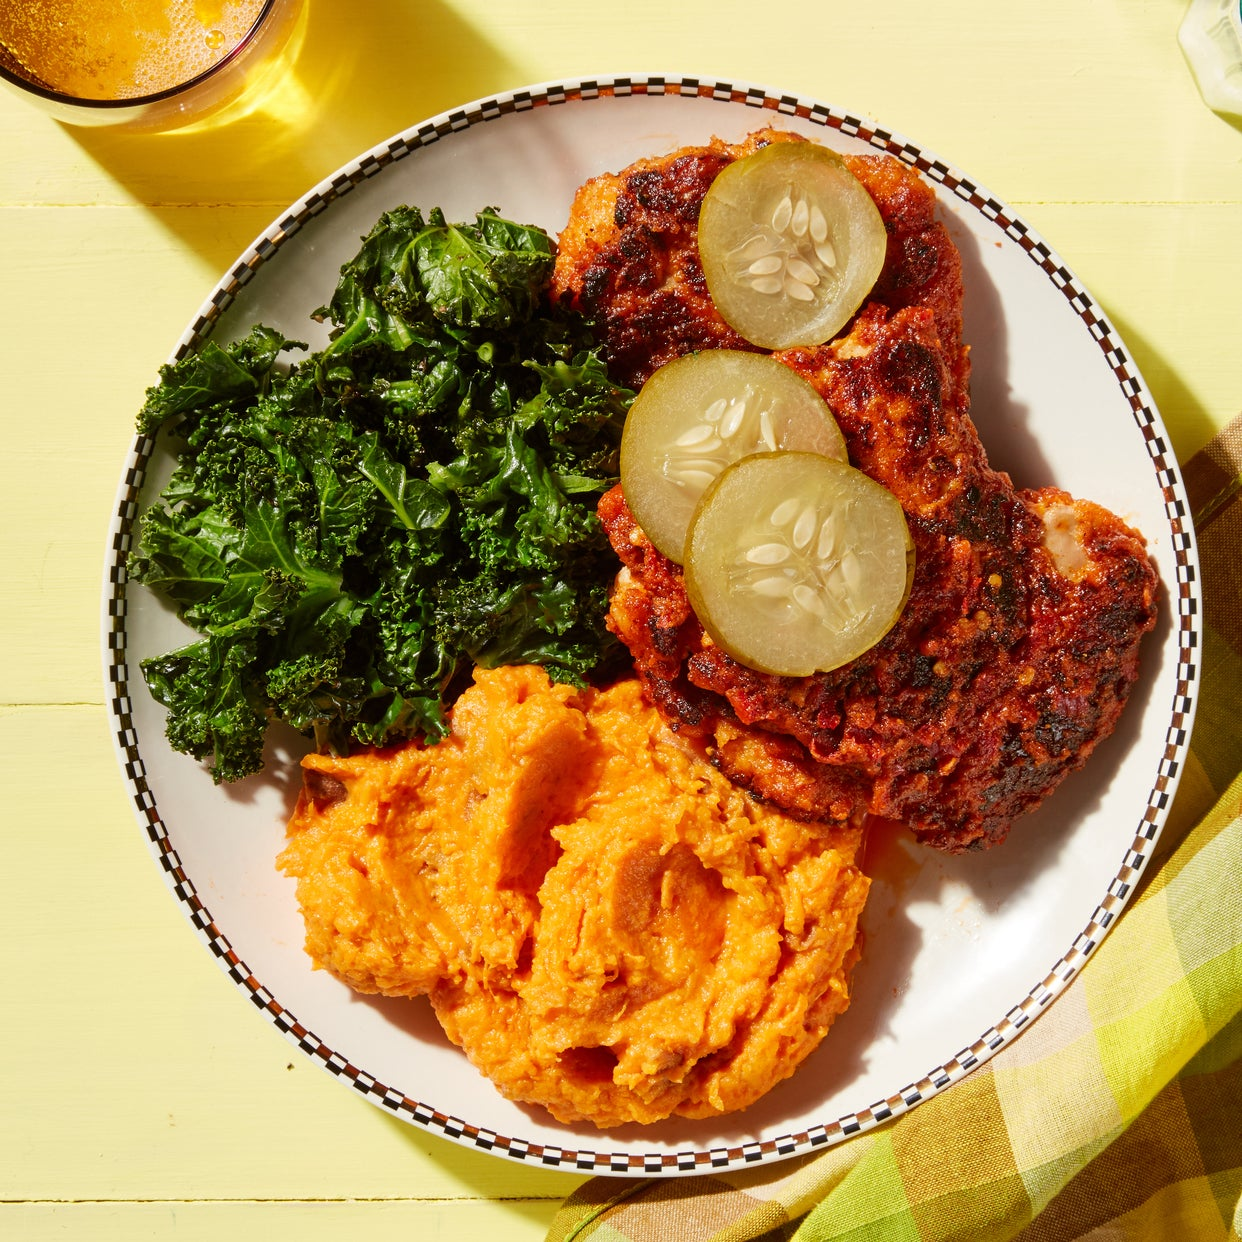 Nashville-Style Hot Chicken with Maple Kale  & Mashed Sweet Potatoes